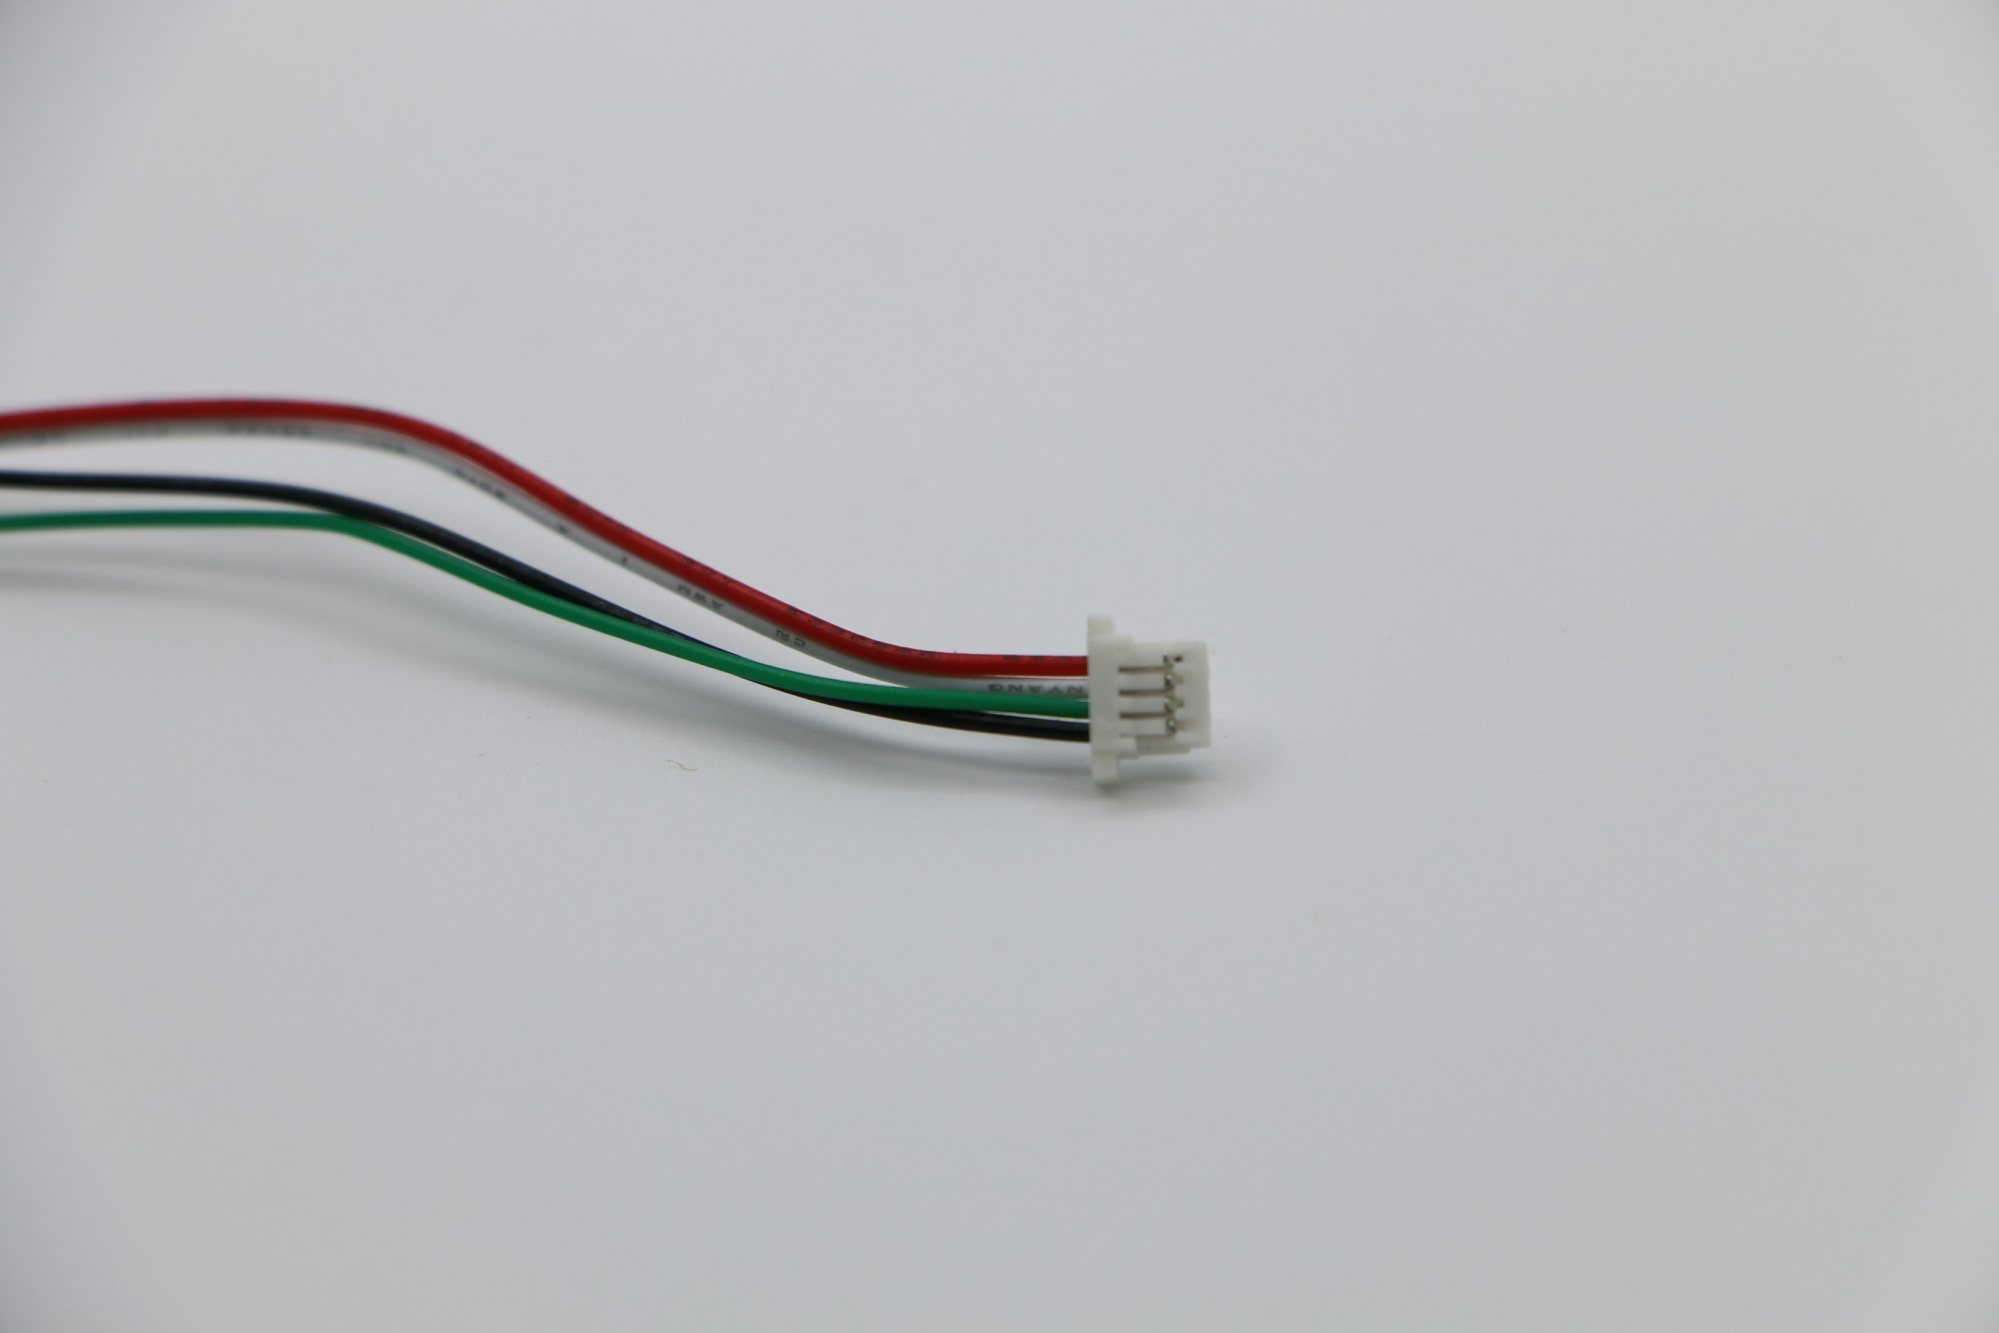 hight resolution of oem wire harness for electrical system cable connector